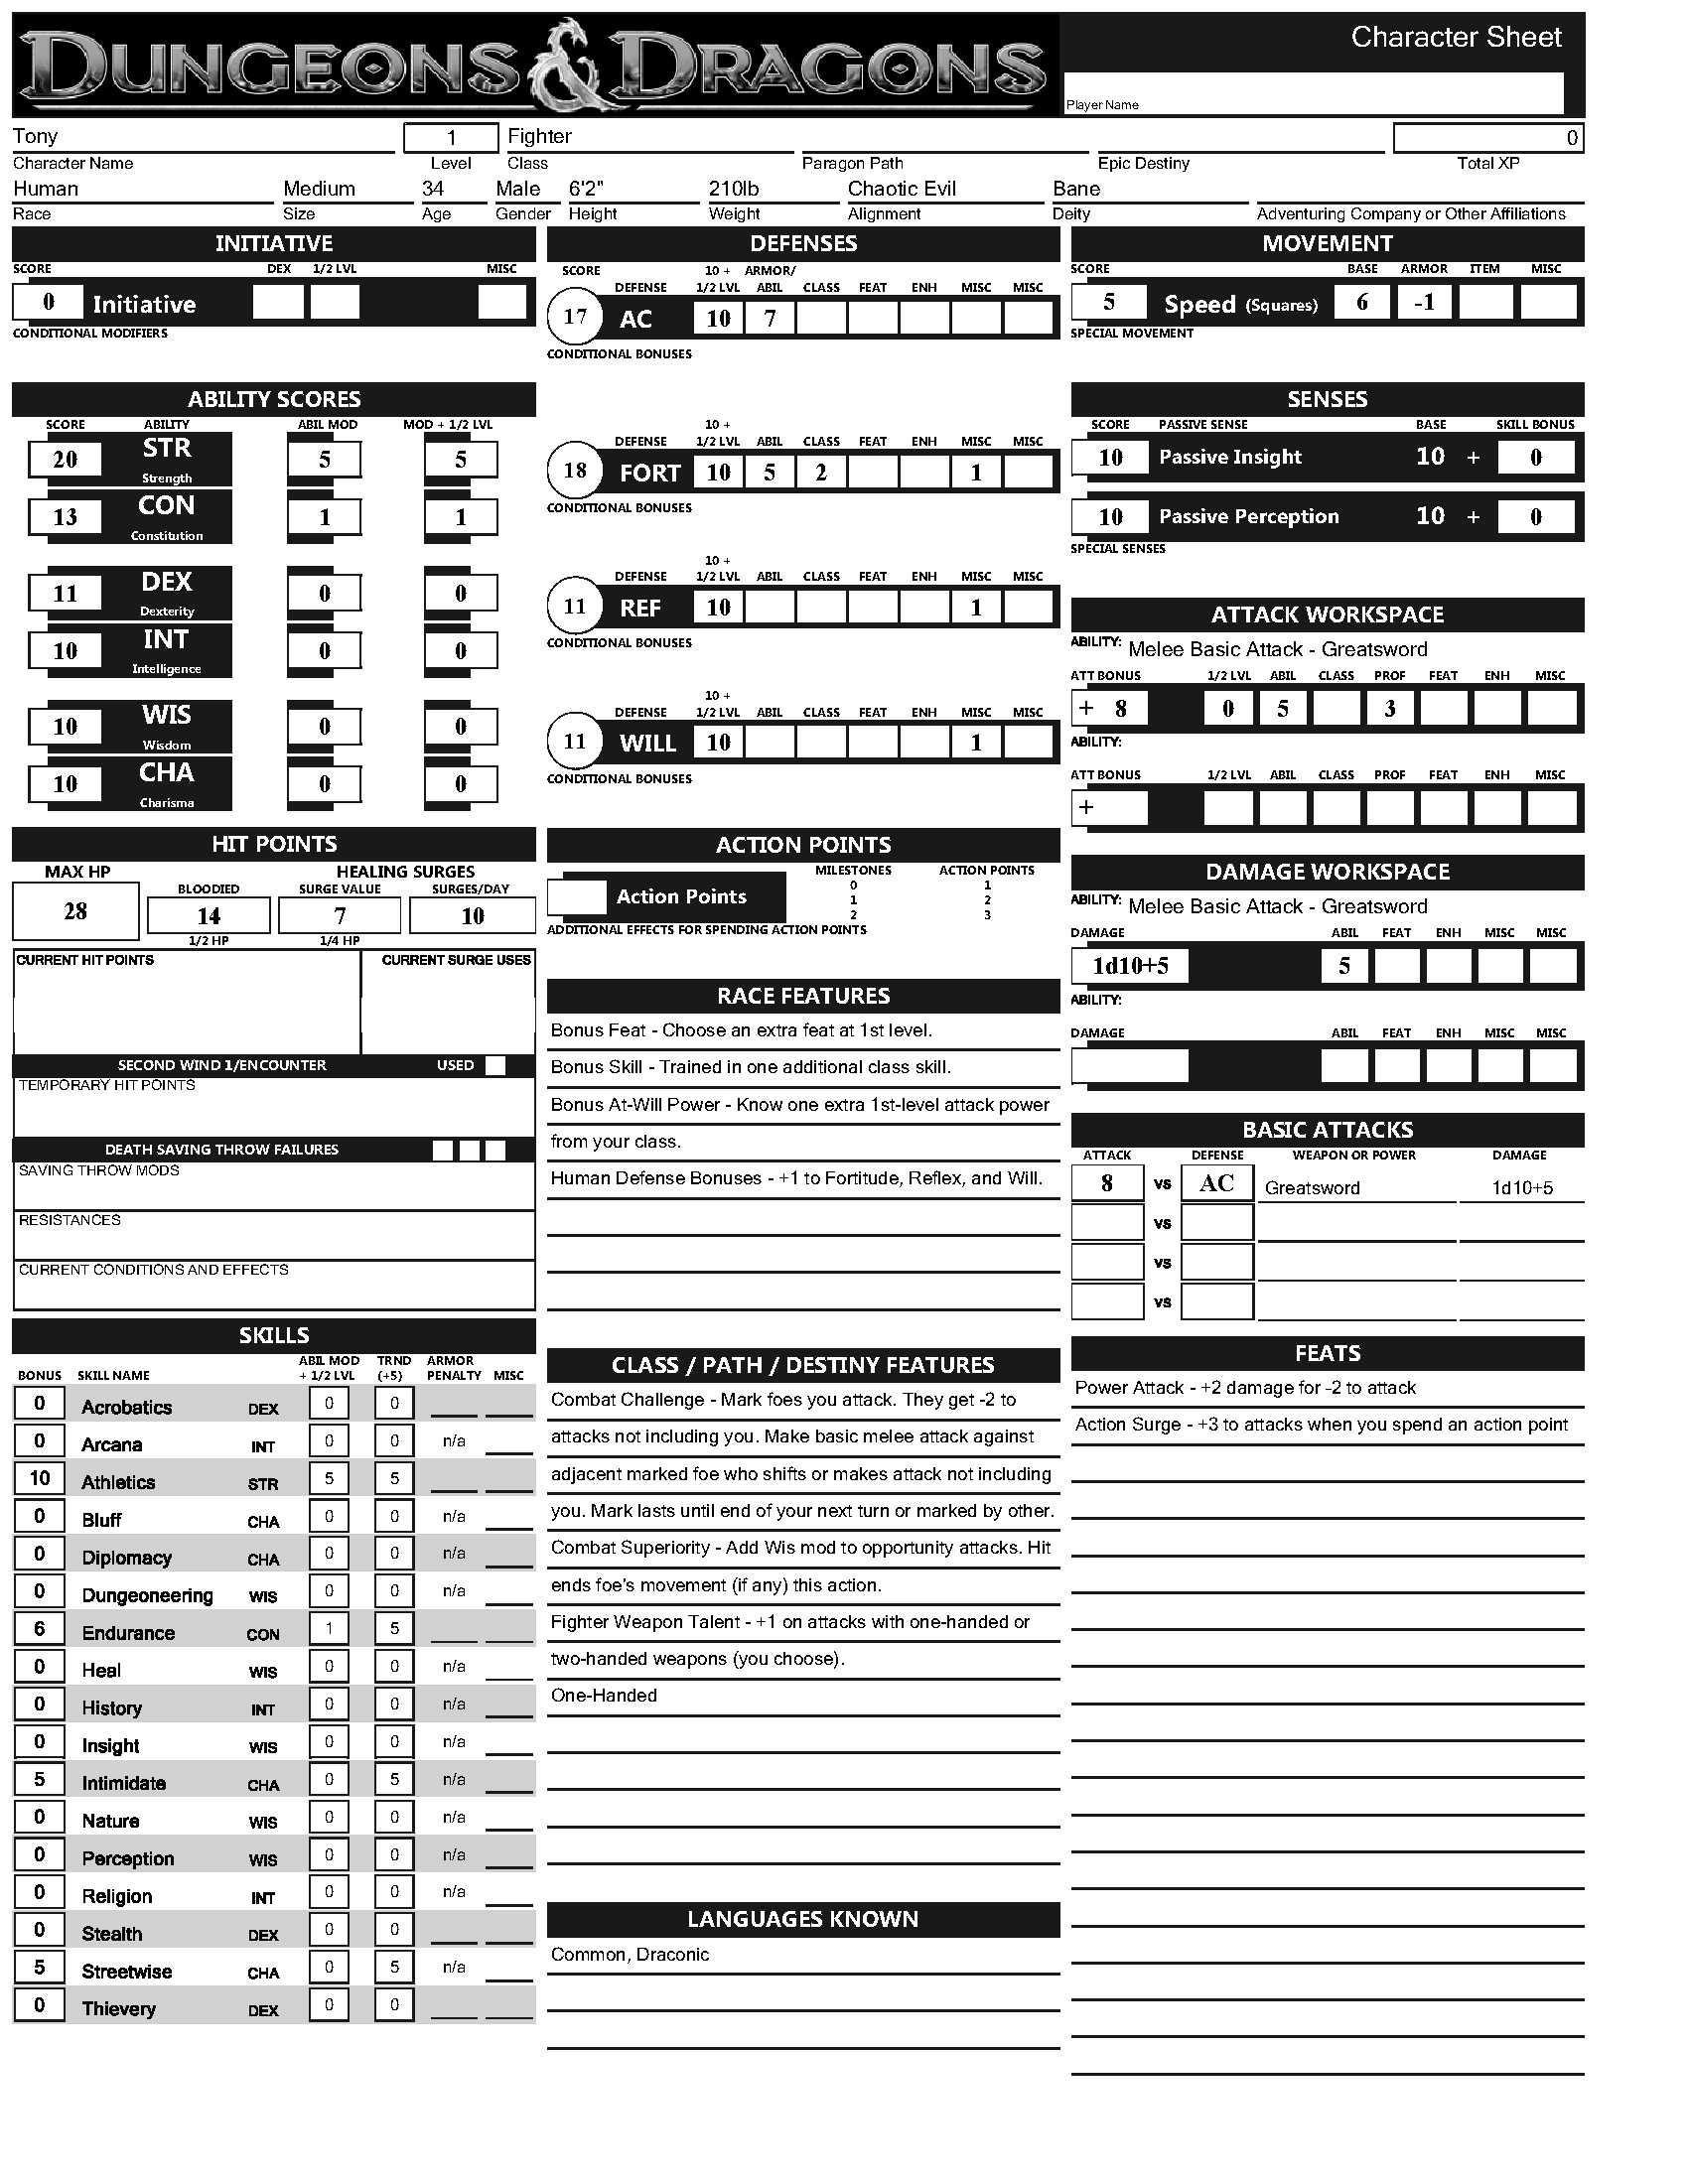 image relating to 3.5e Character Sheet Printable called Dungeons and dragons 3.5 identity sheet Index of / DND